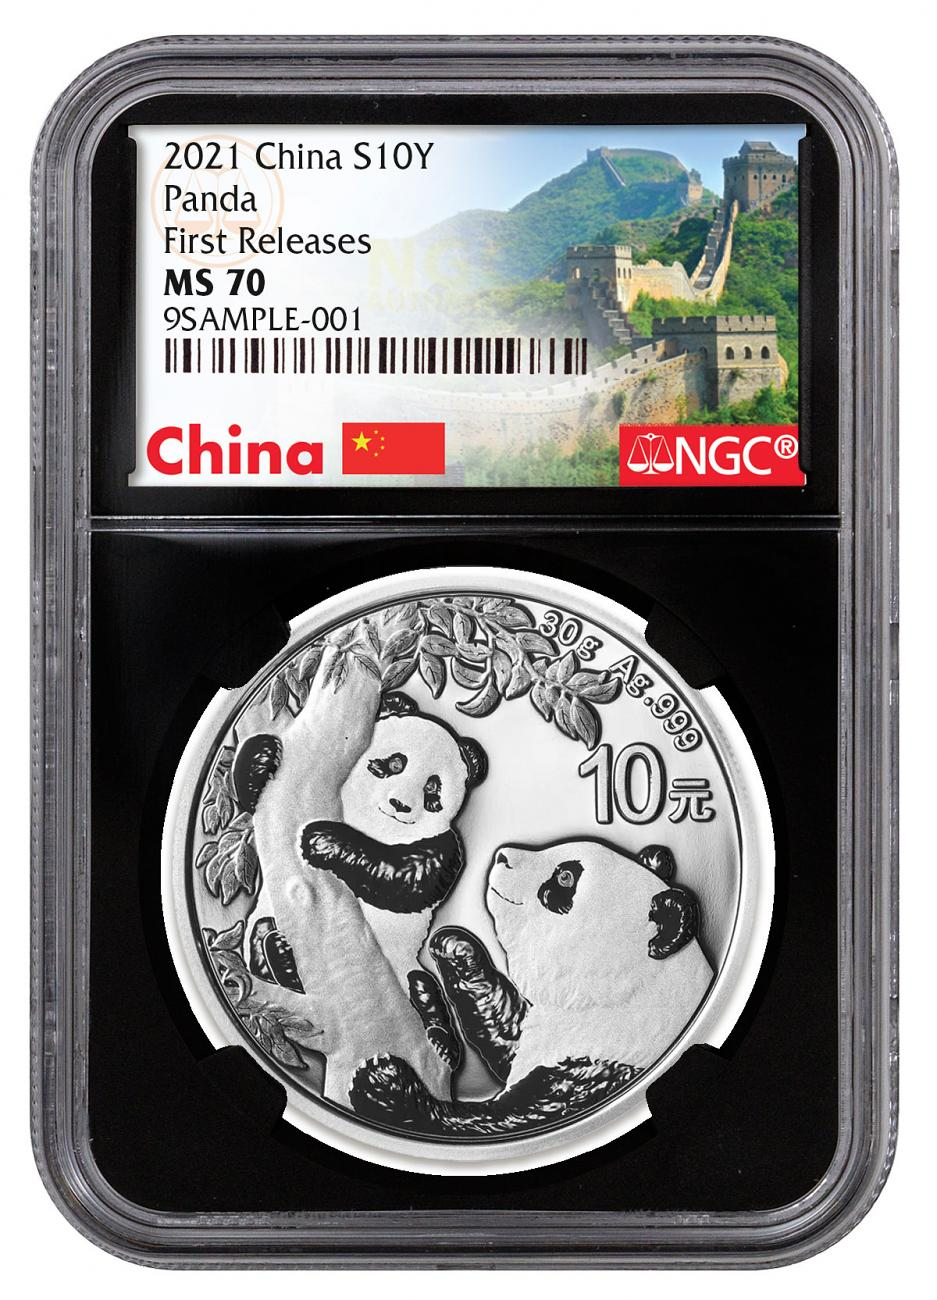 2021 China 30 g Silver Panda ¥10 Coin NGC MS70 FR Black Core Holder Great Wall Label